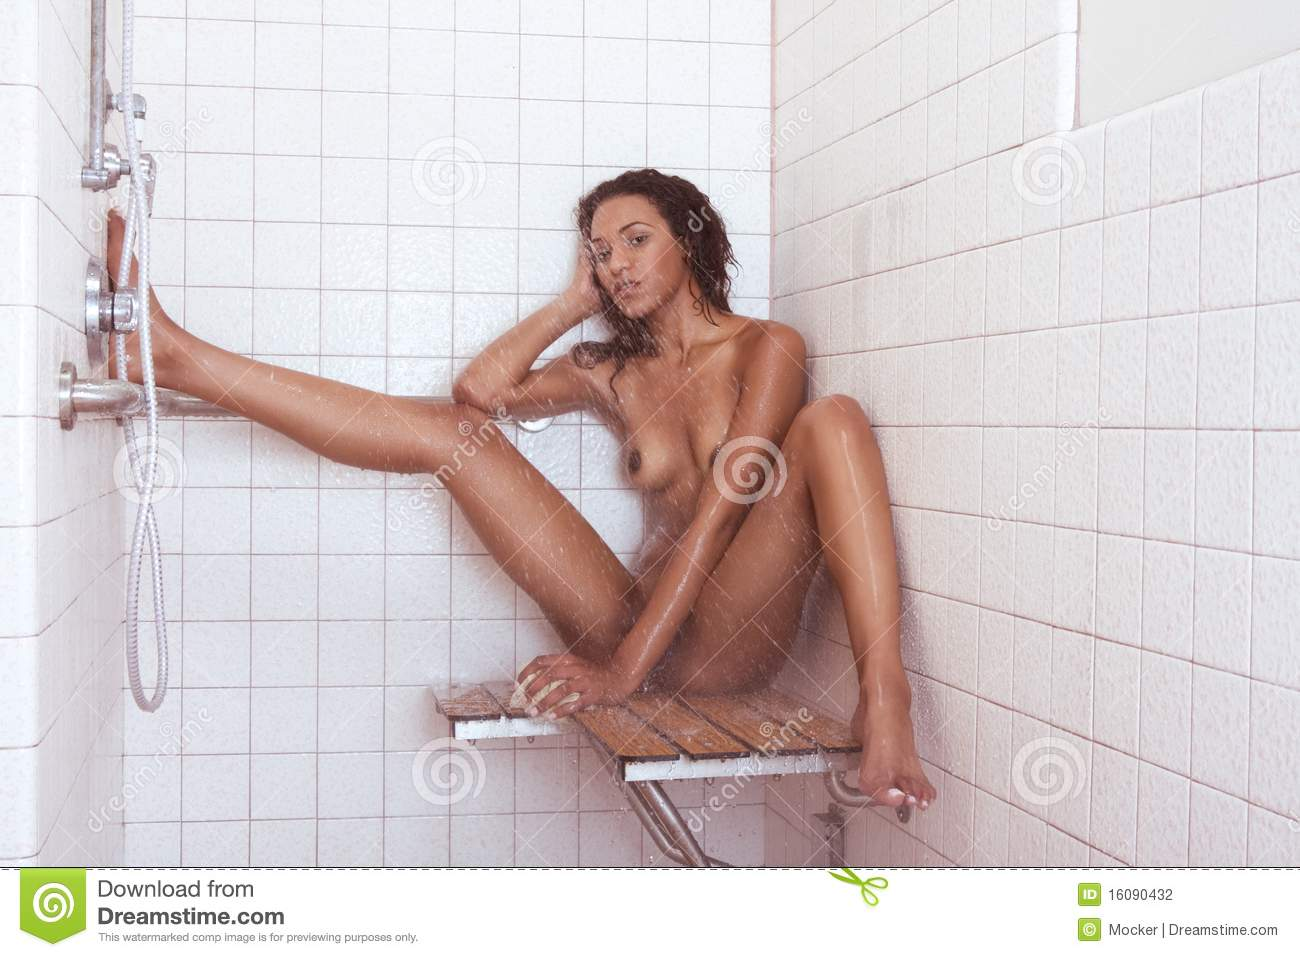 Nude woman in shower pic